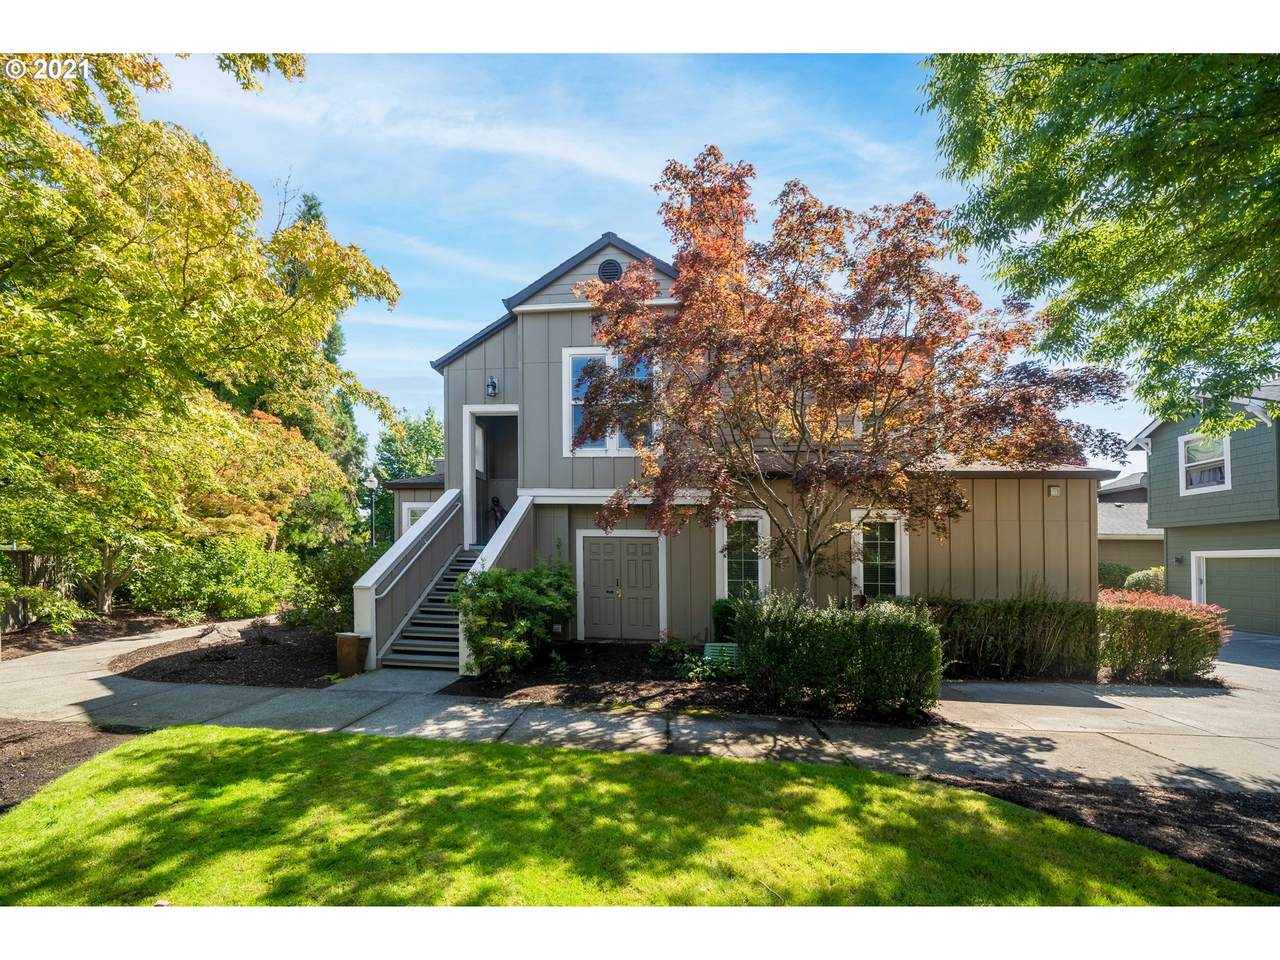 1895 Ashberry Dr - Photo 1